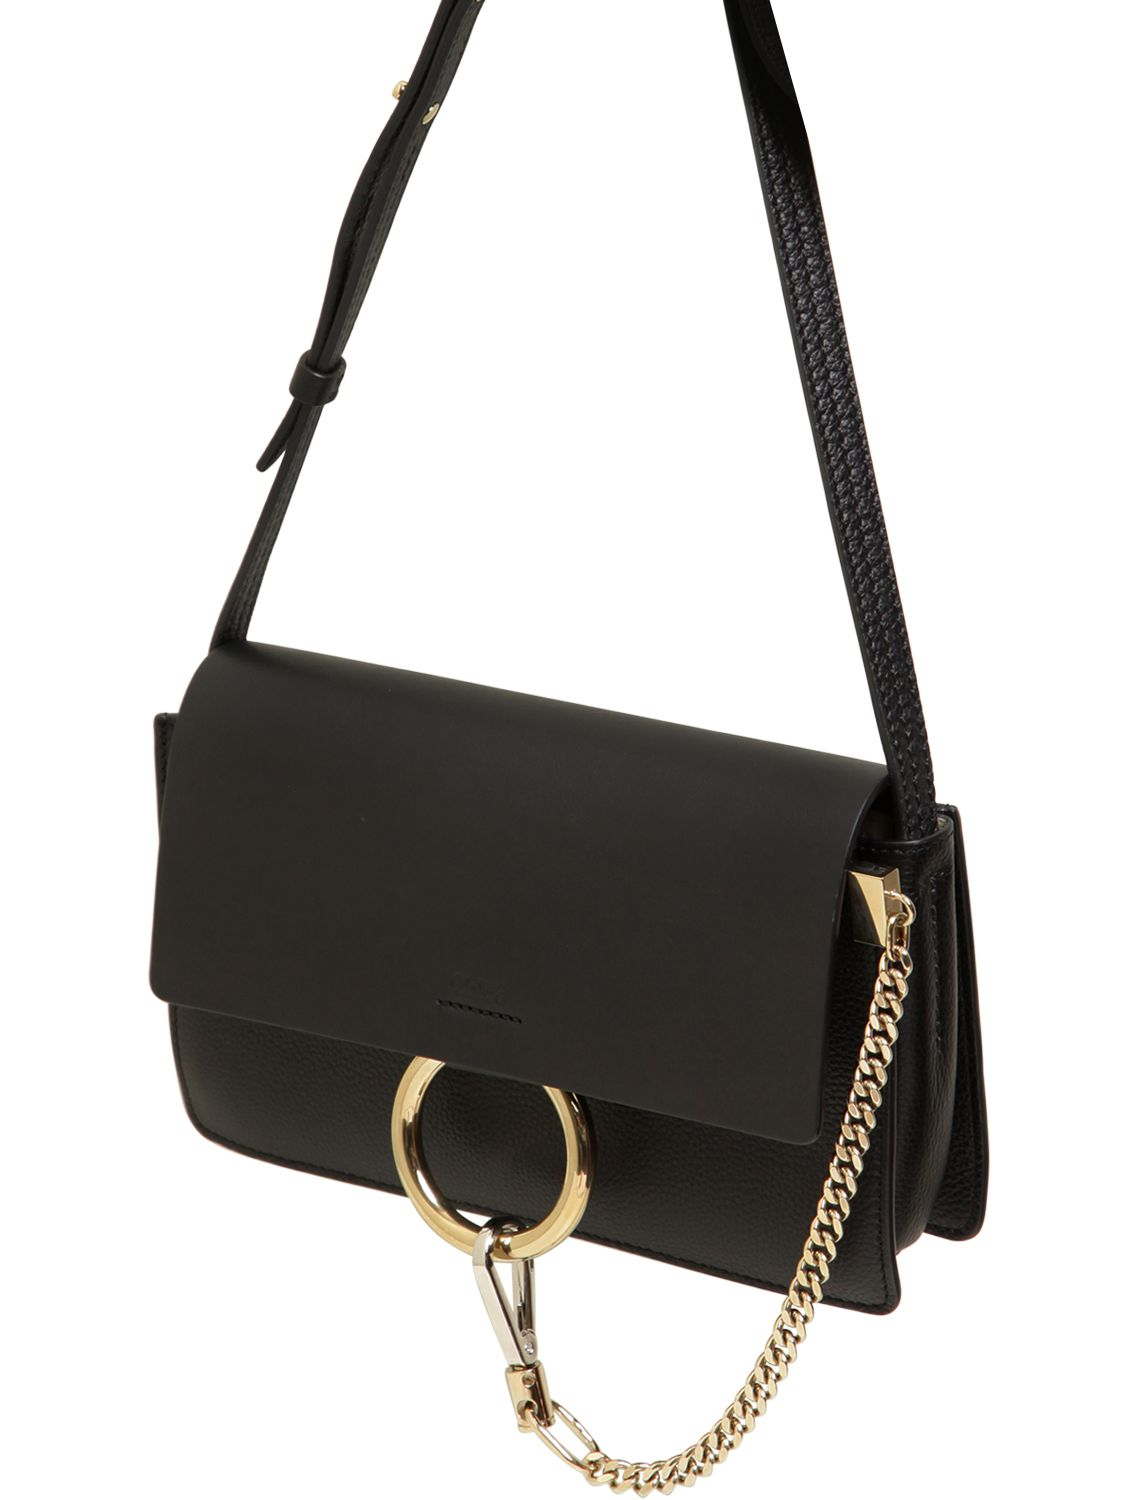 Lyst - Chloé Small Faye Grained   Smooth Leather Bag in Black 24b0ffd7b8